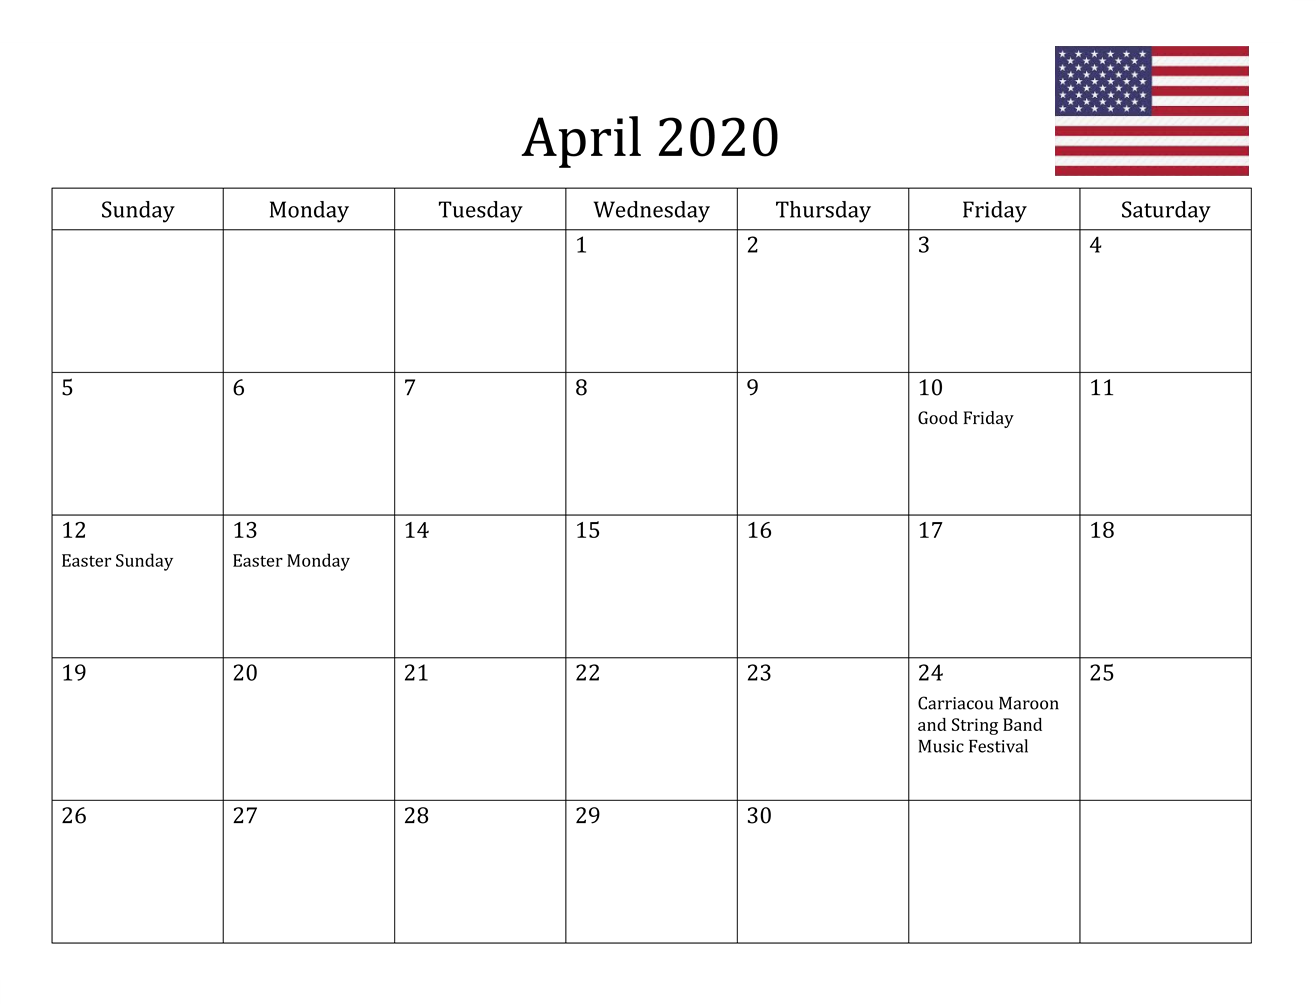 april 2020 us holidays calendar